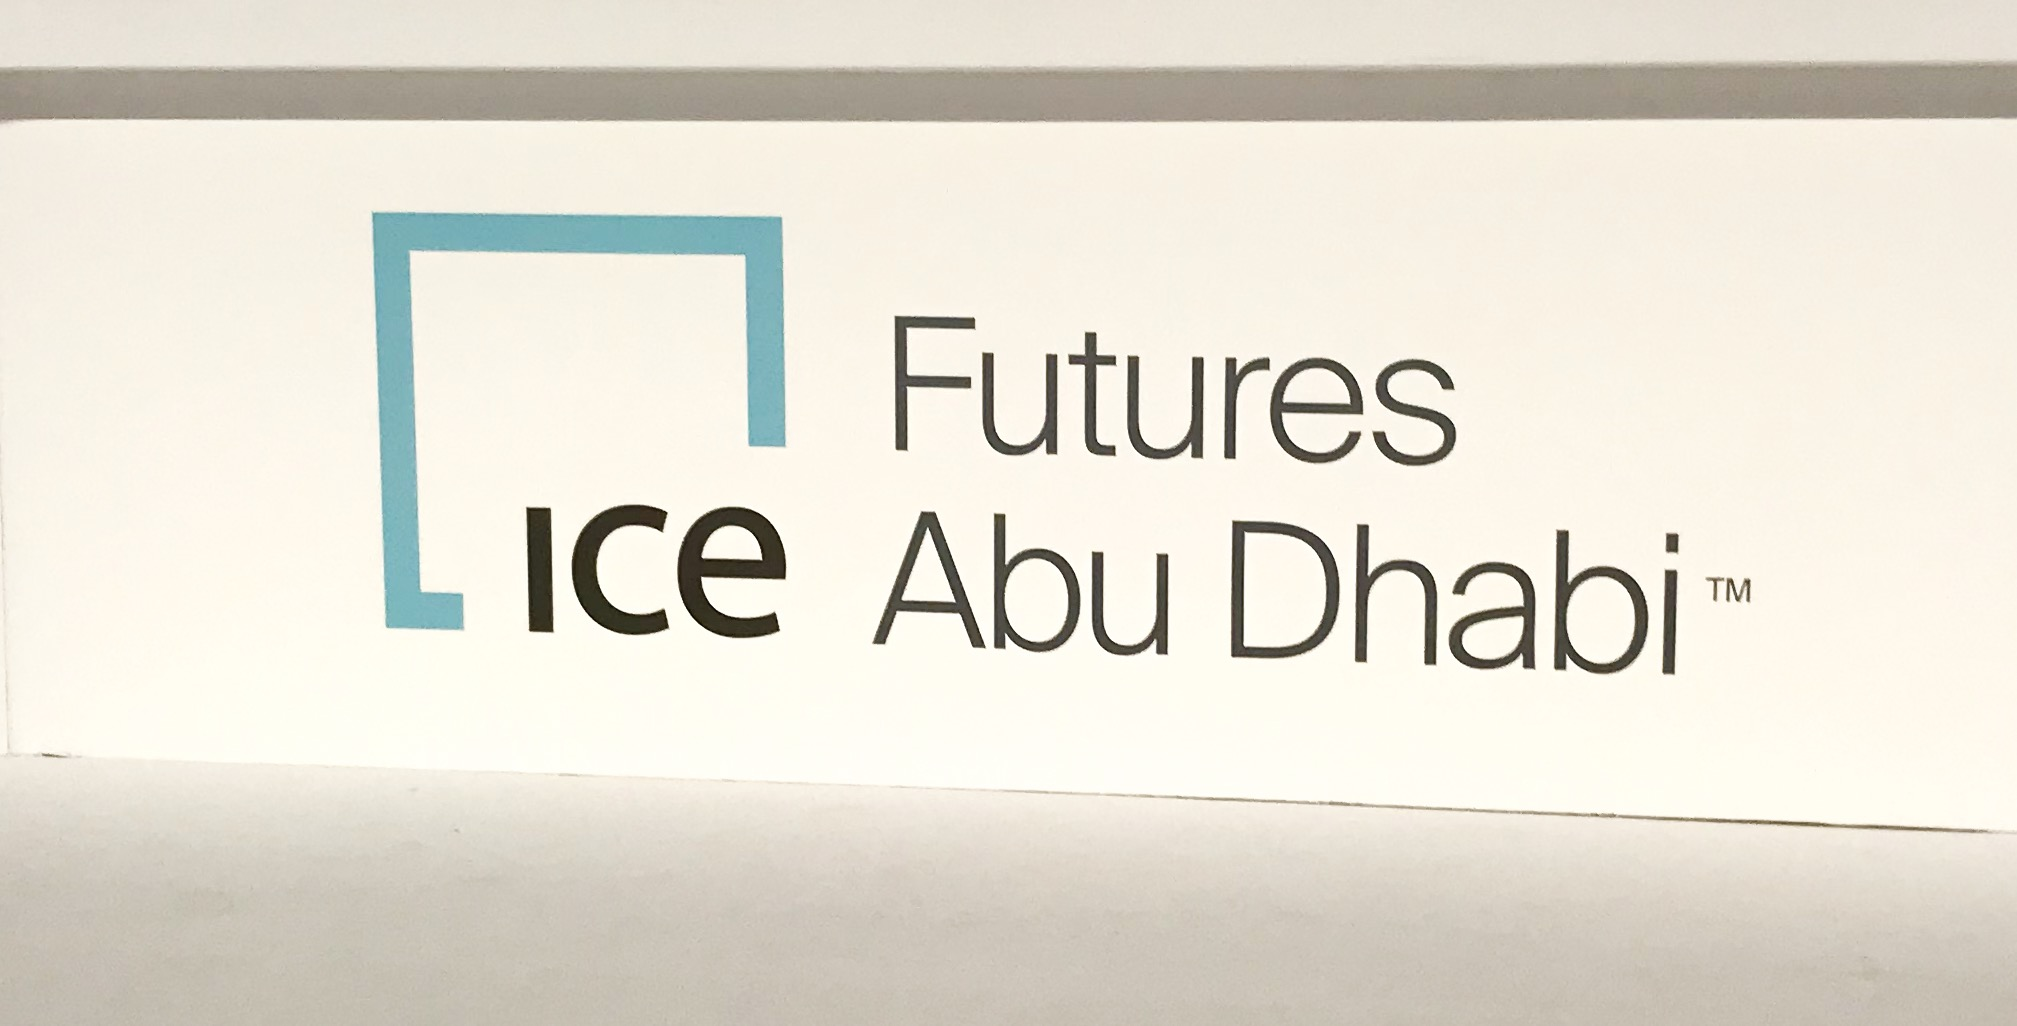 ICE has officially announced the launch of Murban Futures increasing transparency, with an opening price of $63.43 per barrel.